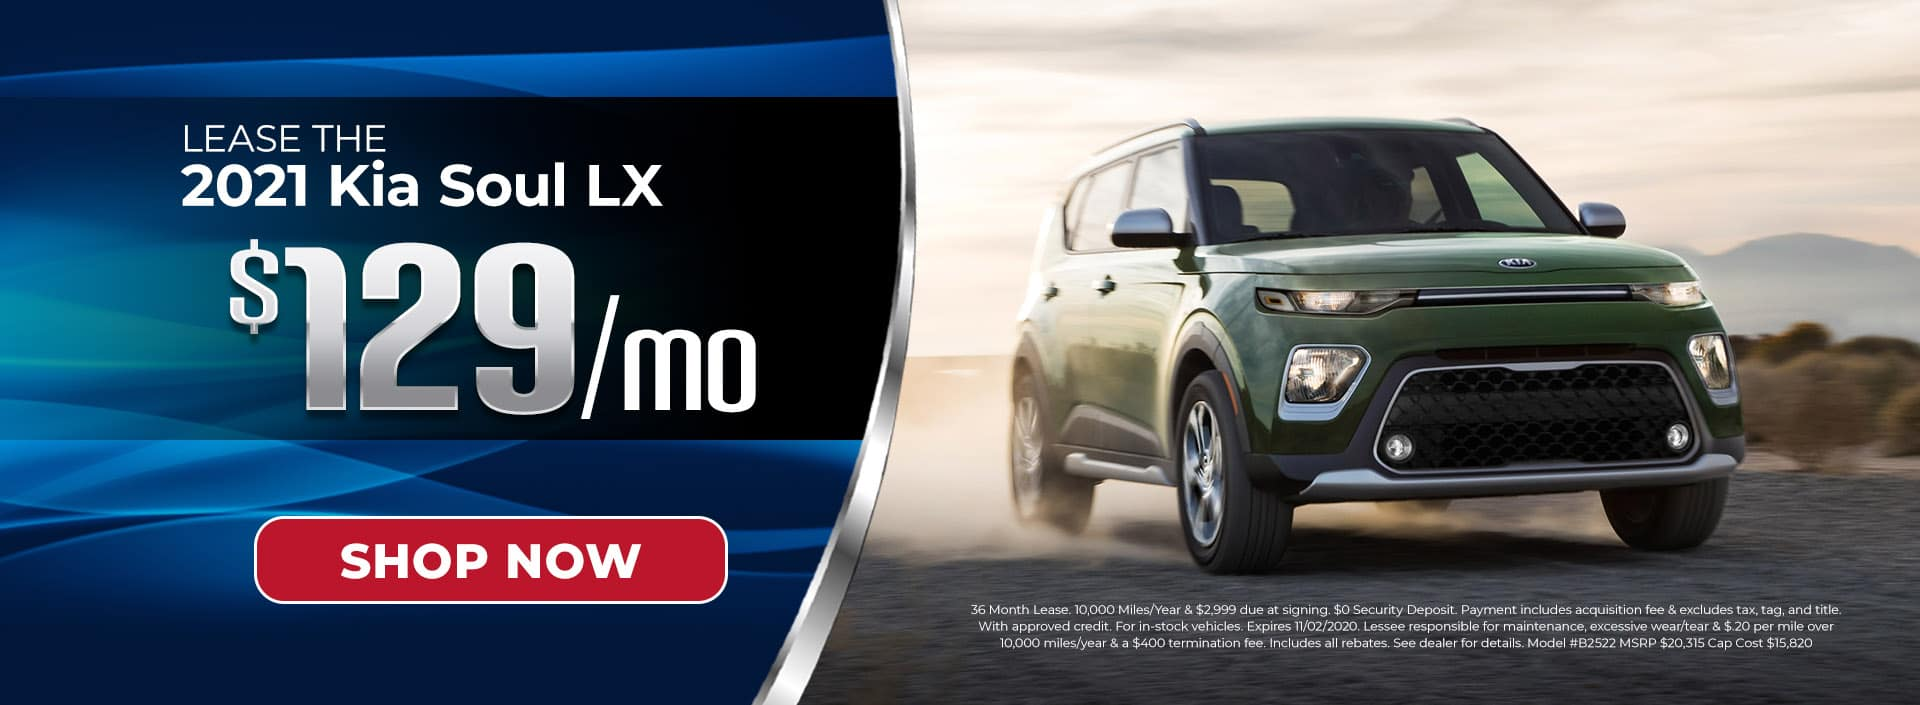 Lease 2021 Kia Soul for $129/mo